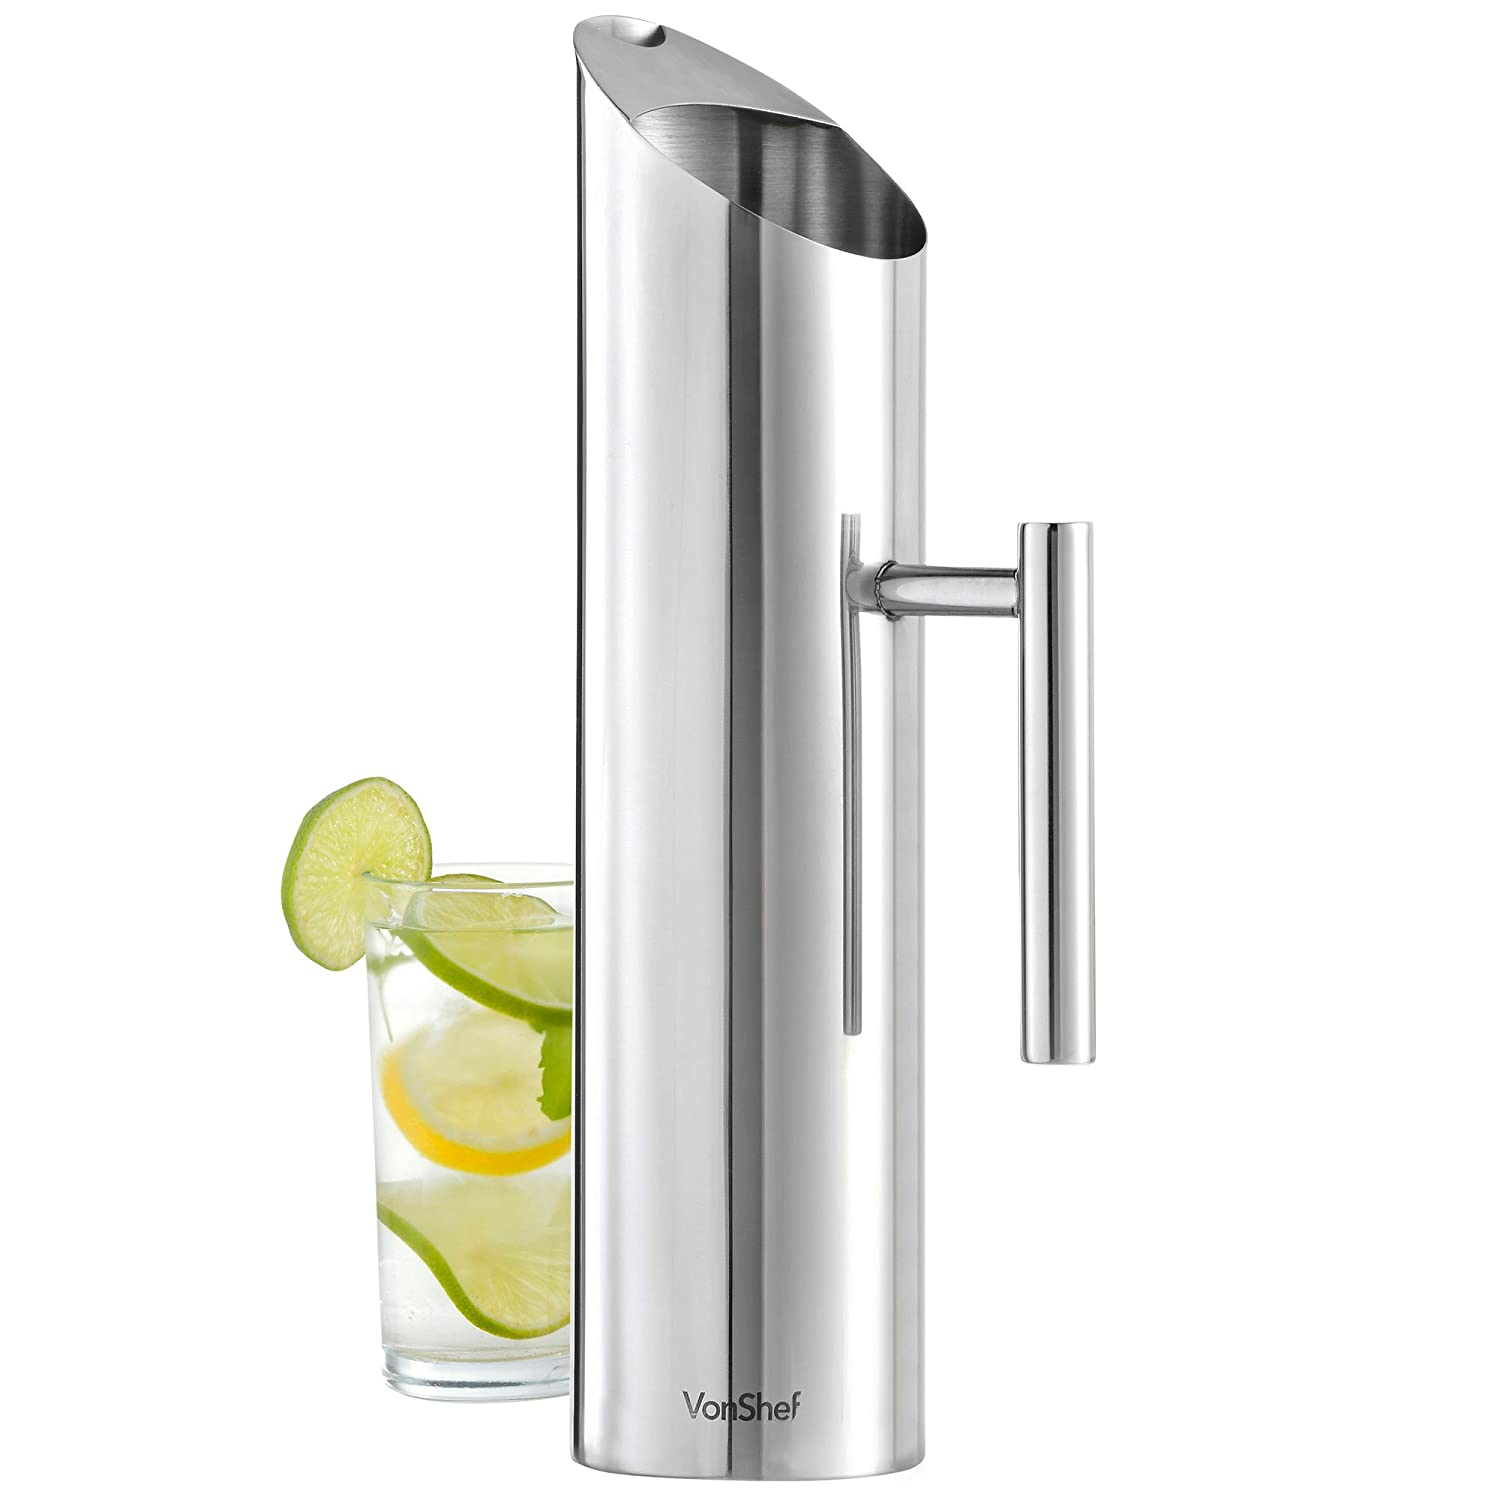 1.7L Stainless Steel Water Pitcher VonShef